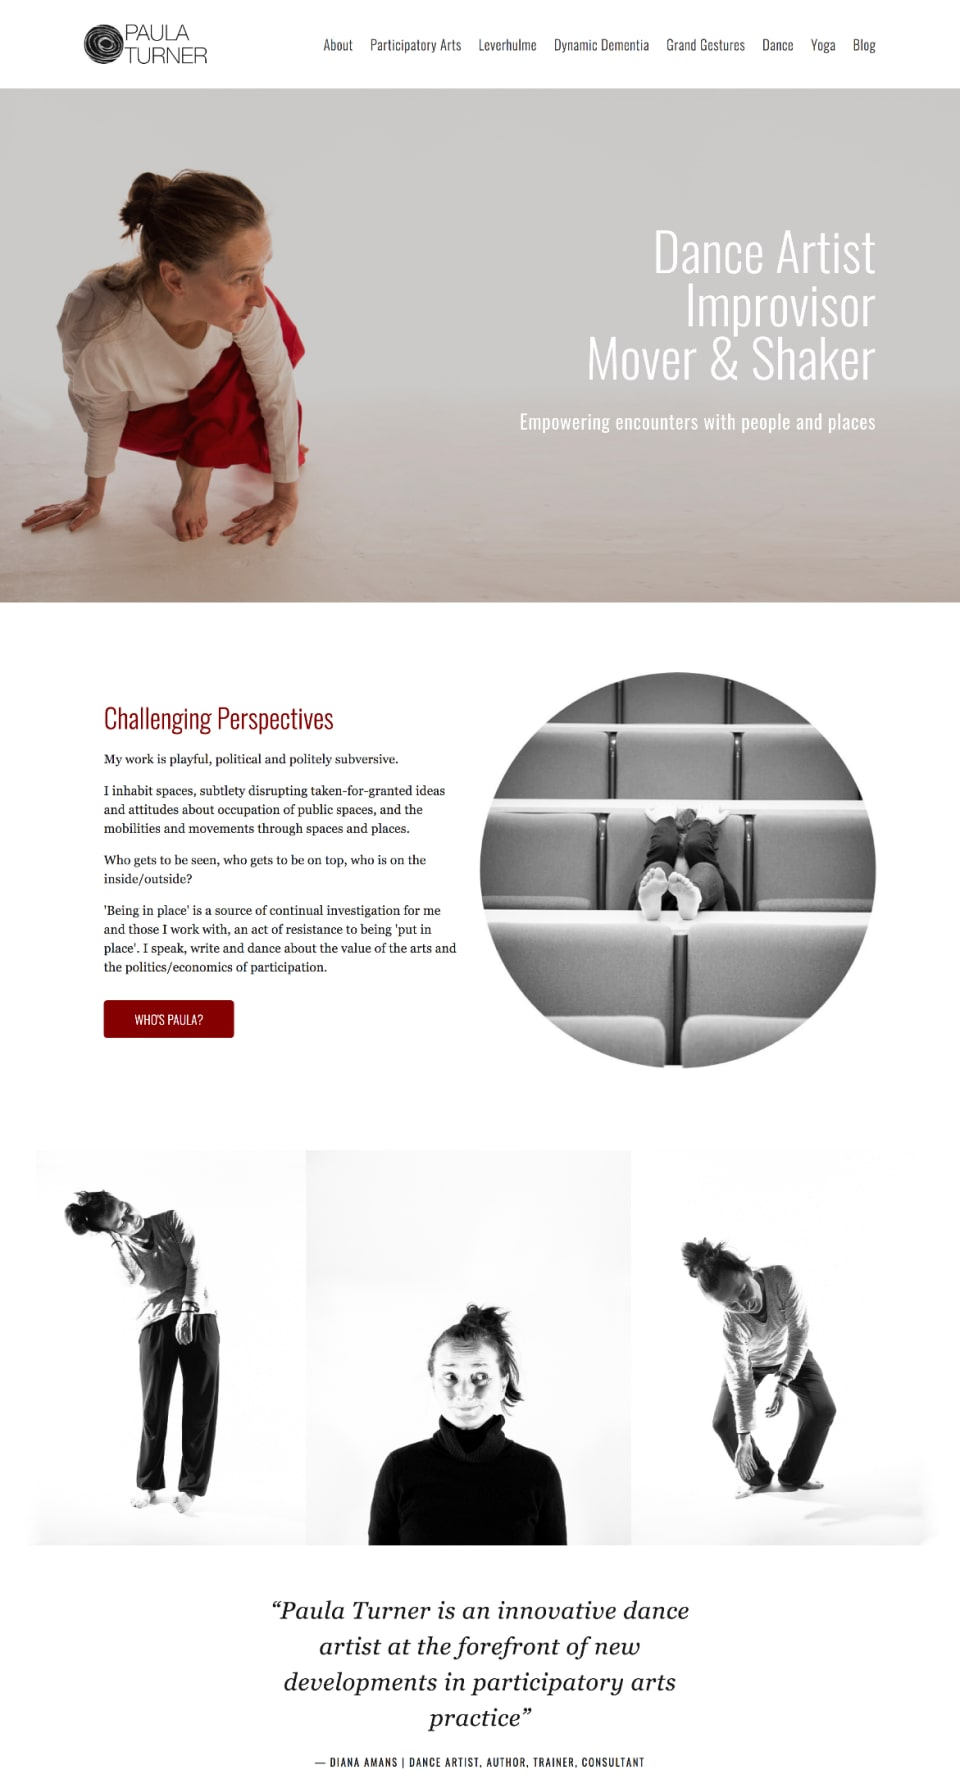 Web design portfolio mockup for Paula Turner